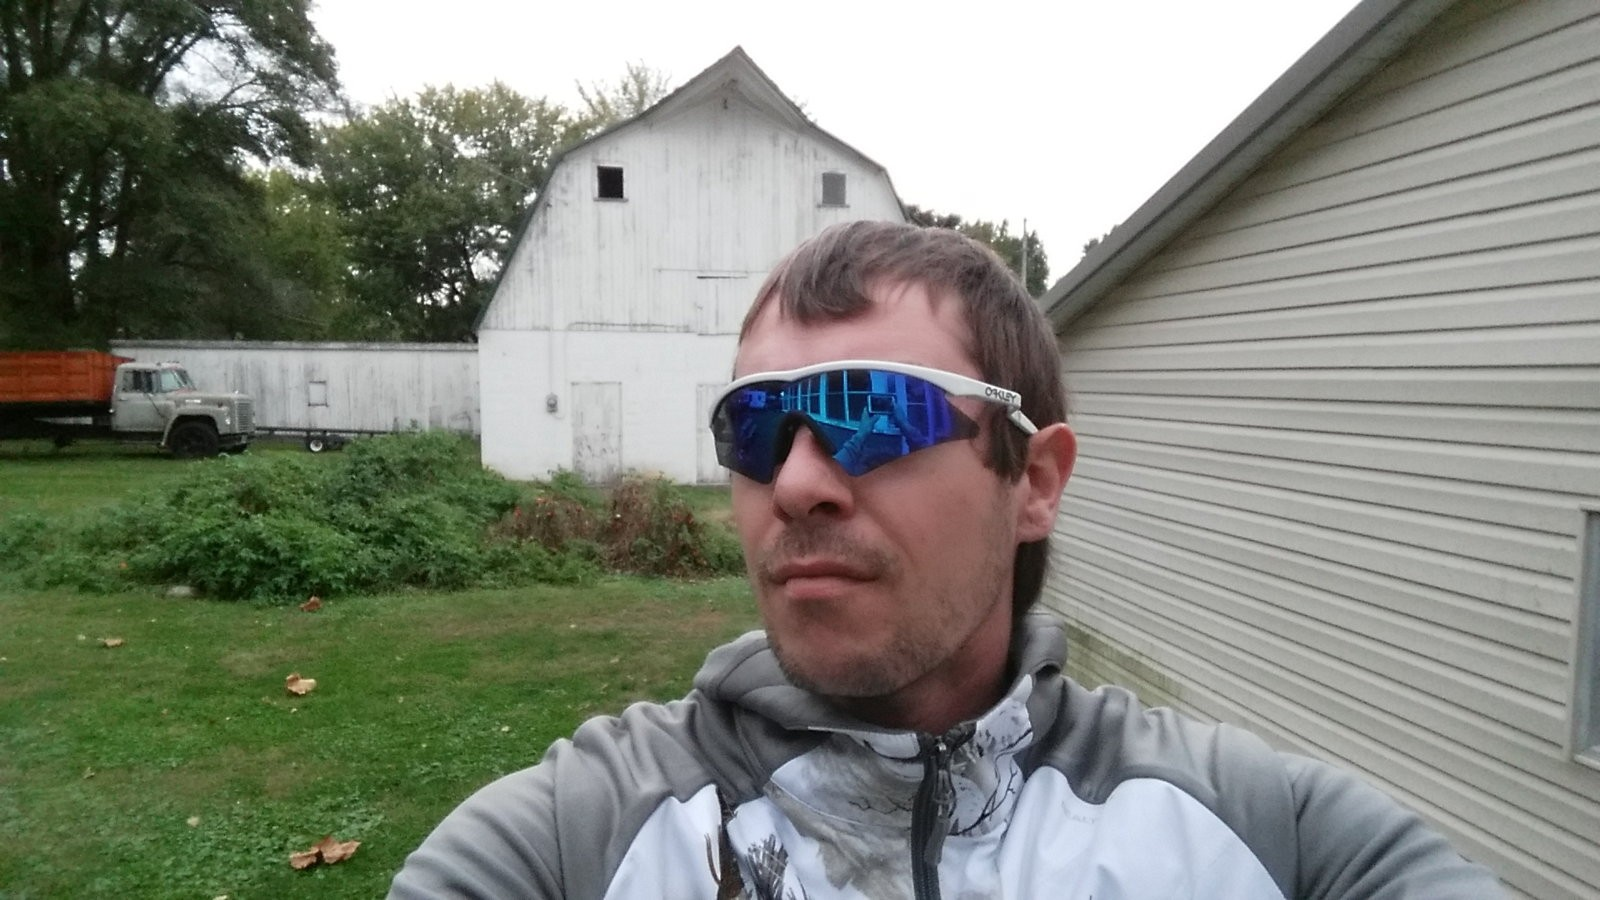 What Oakleys Are You Wearing Today?? - 147741052459794818660.jpg